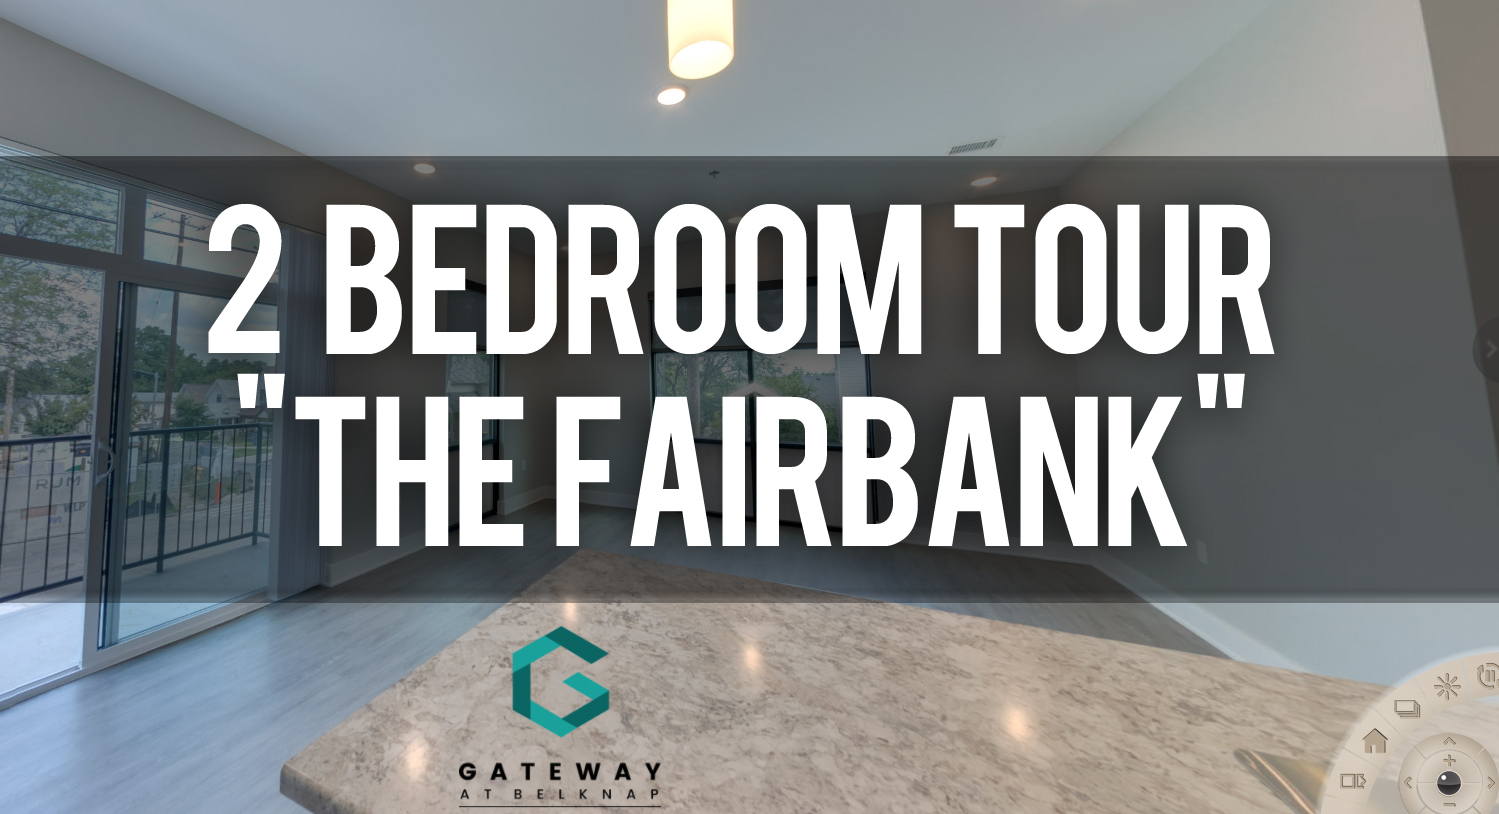 Virtual Tour Gateway at Belknap Apartments 1 bedroom floorplan The Fairbank